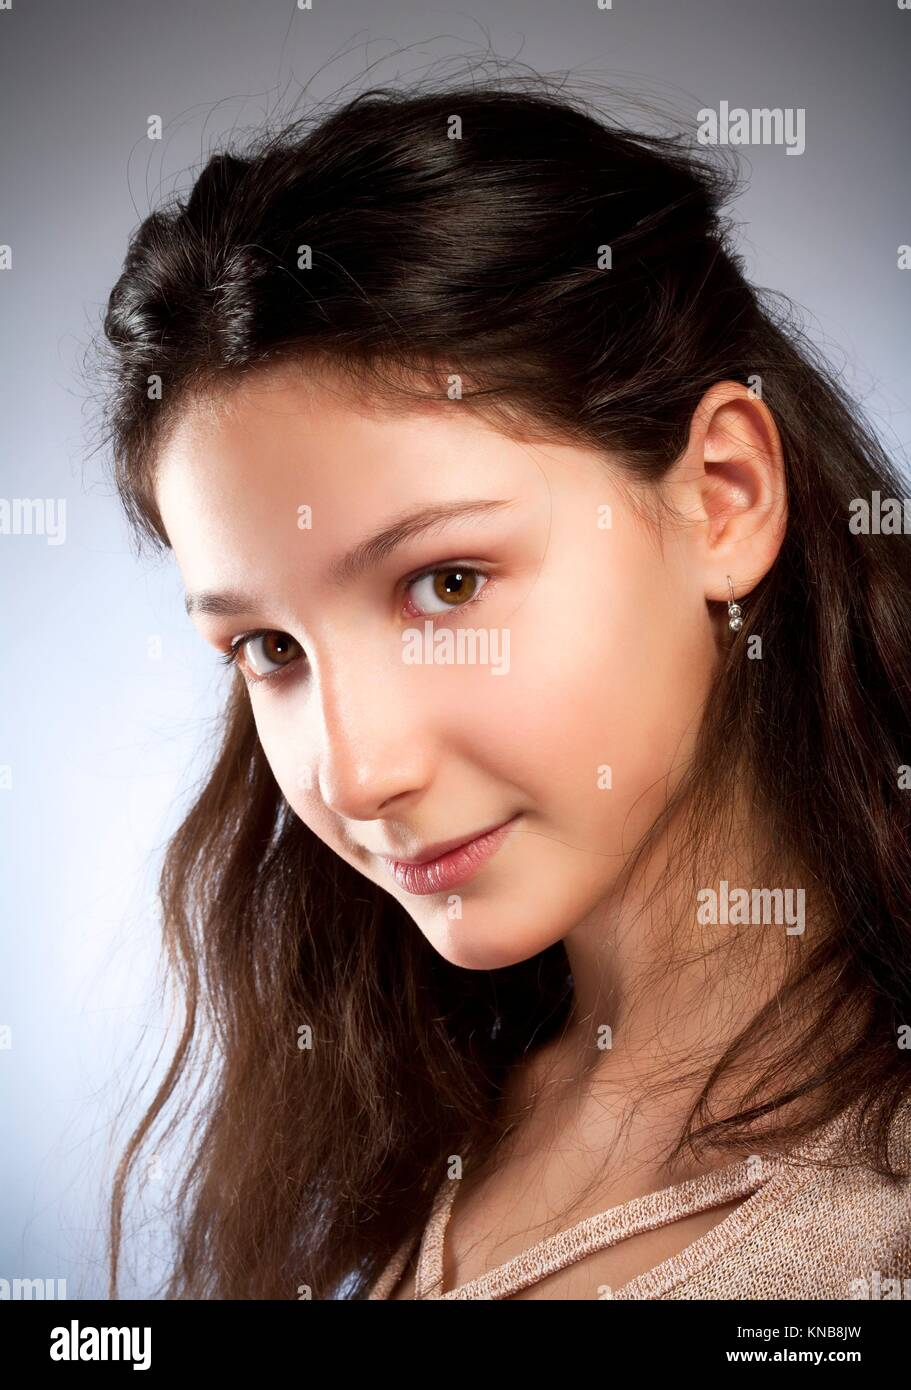 Portrait of a Preadolescent Girl with Brown Hair. - Stock Image